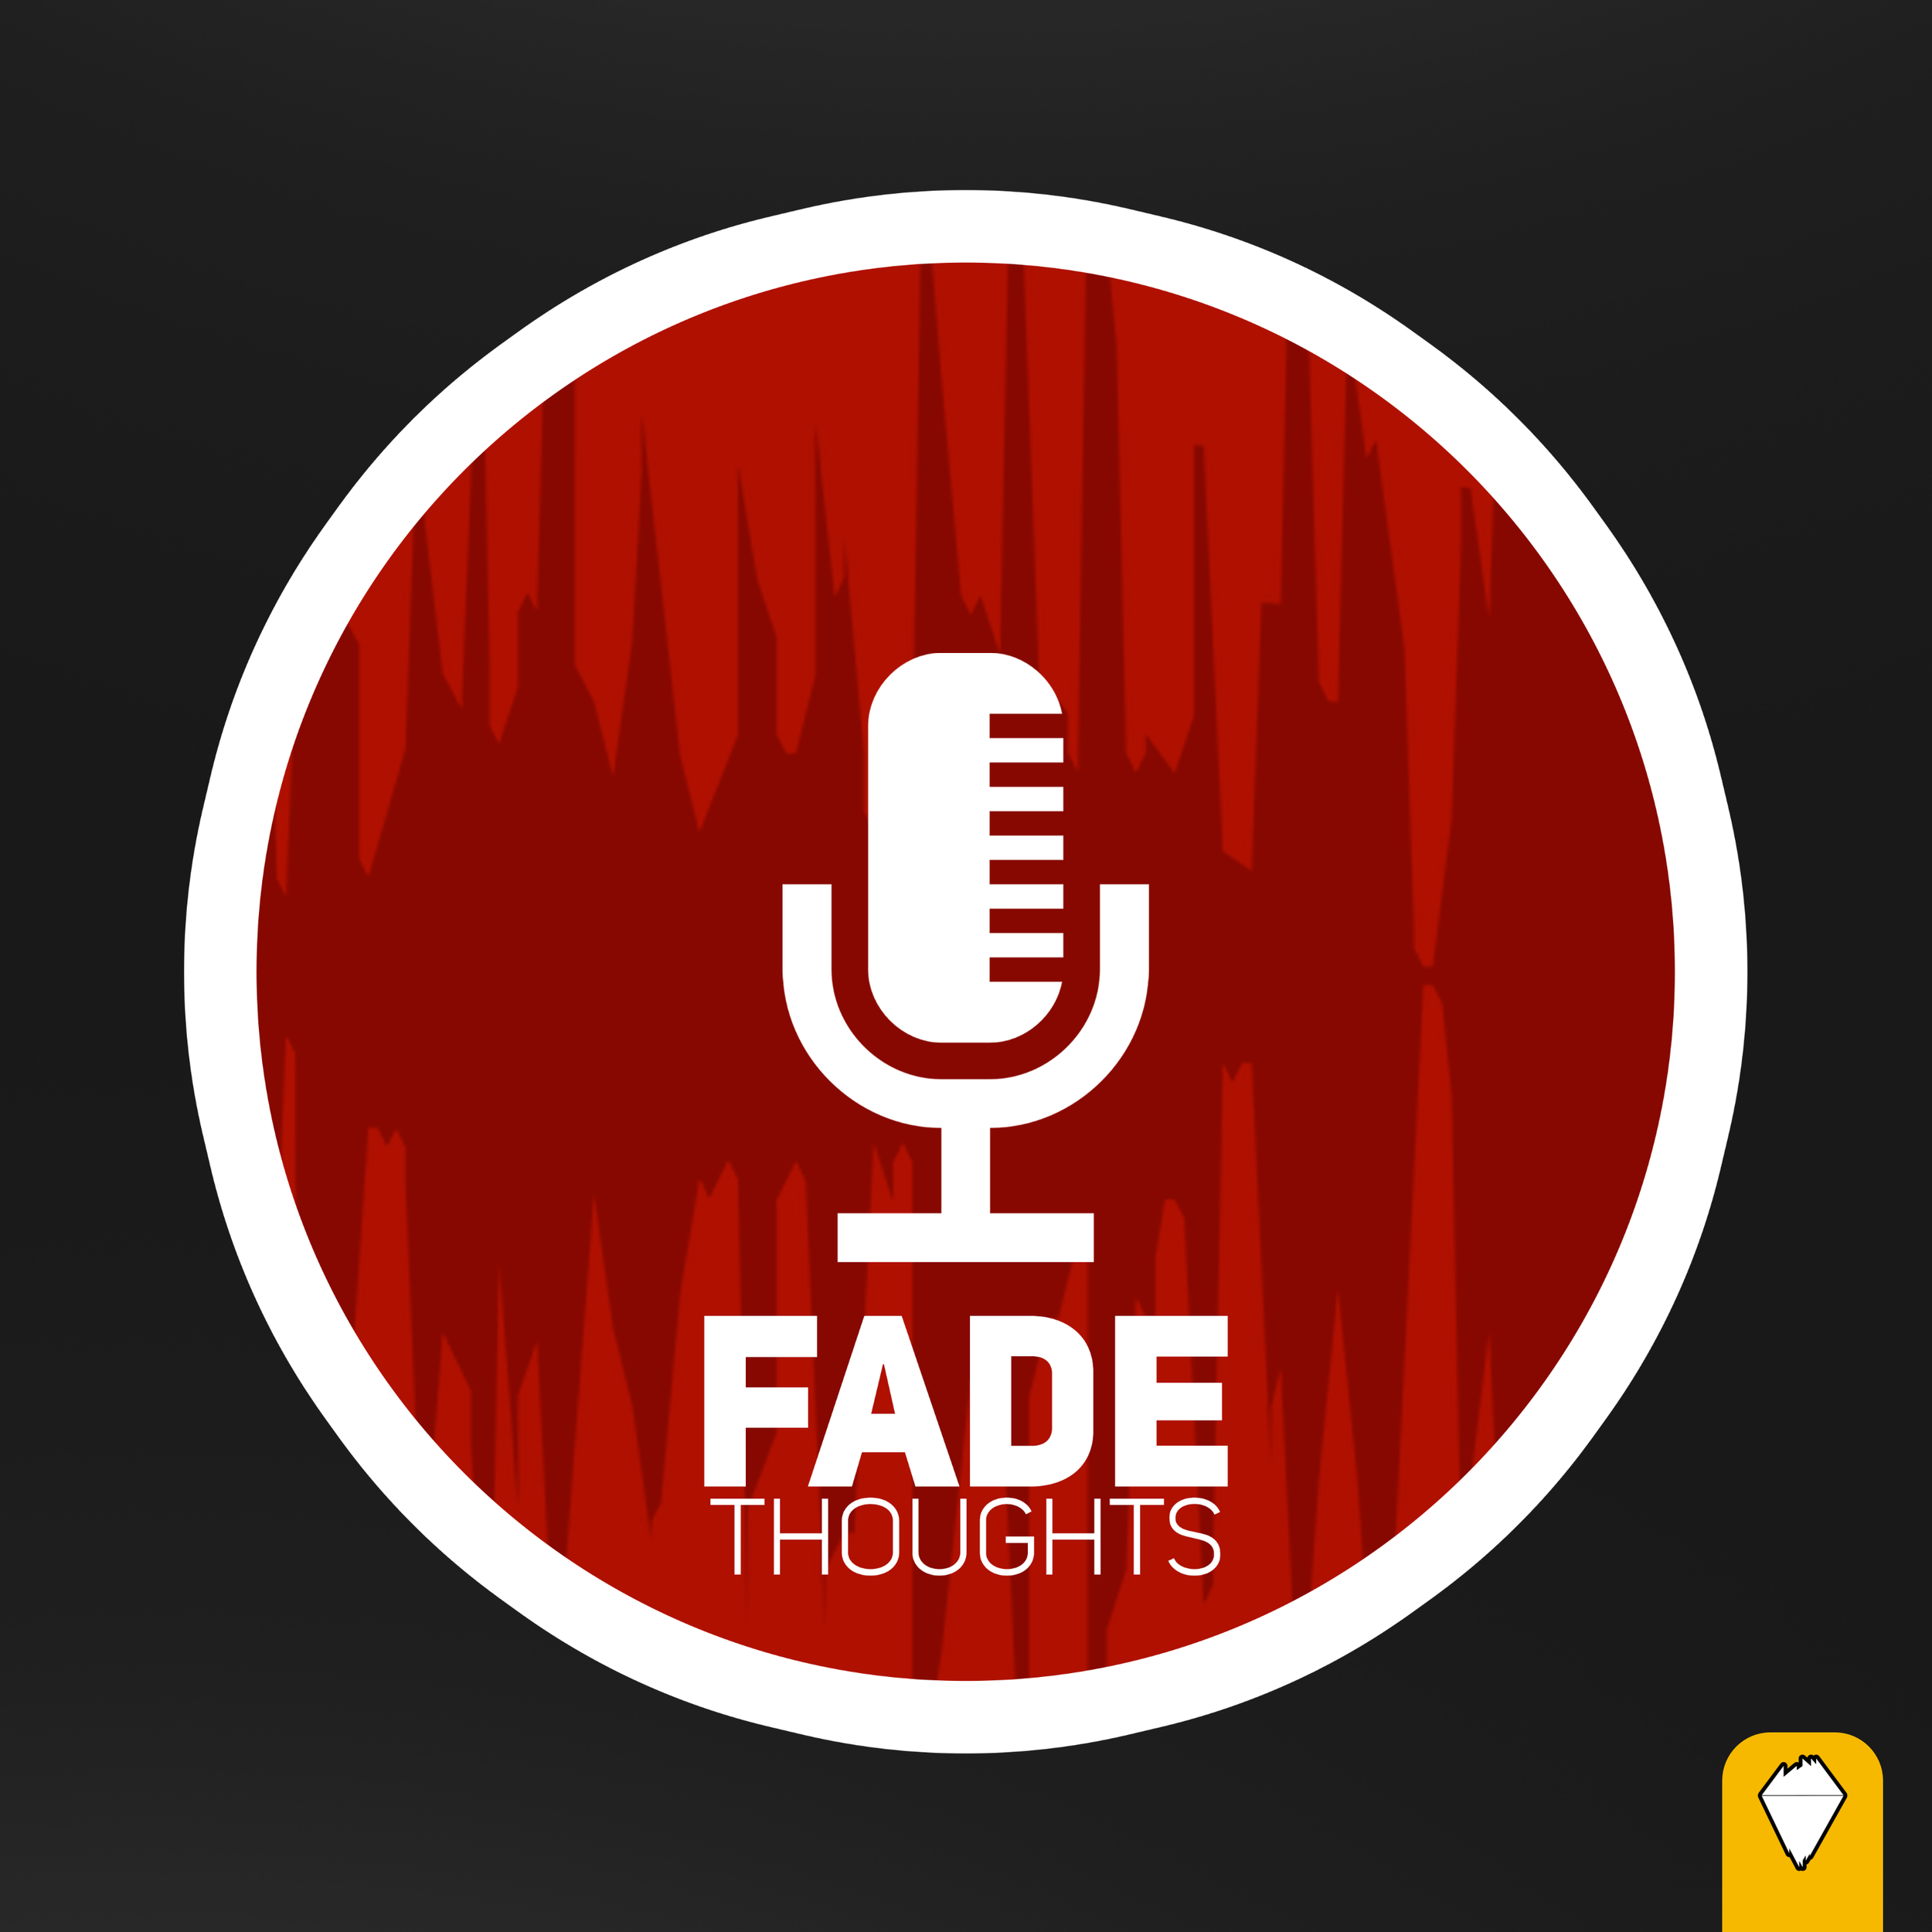 Fade Thoughts - Comic Fade's Jacob & Derek talk about the latest in entertainment and YouTube news. They also feature some excellent guest interviews.